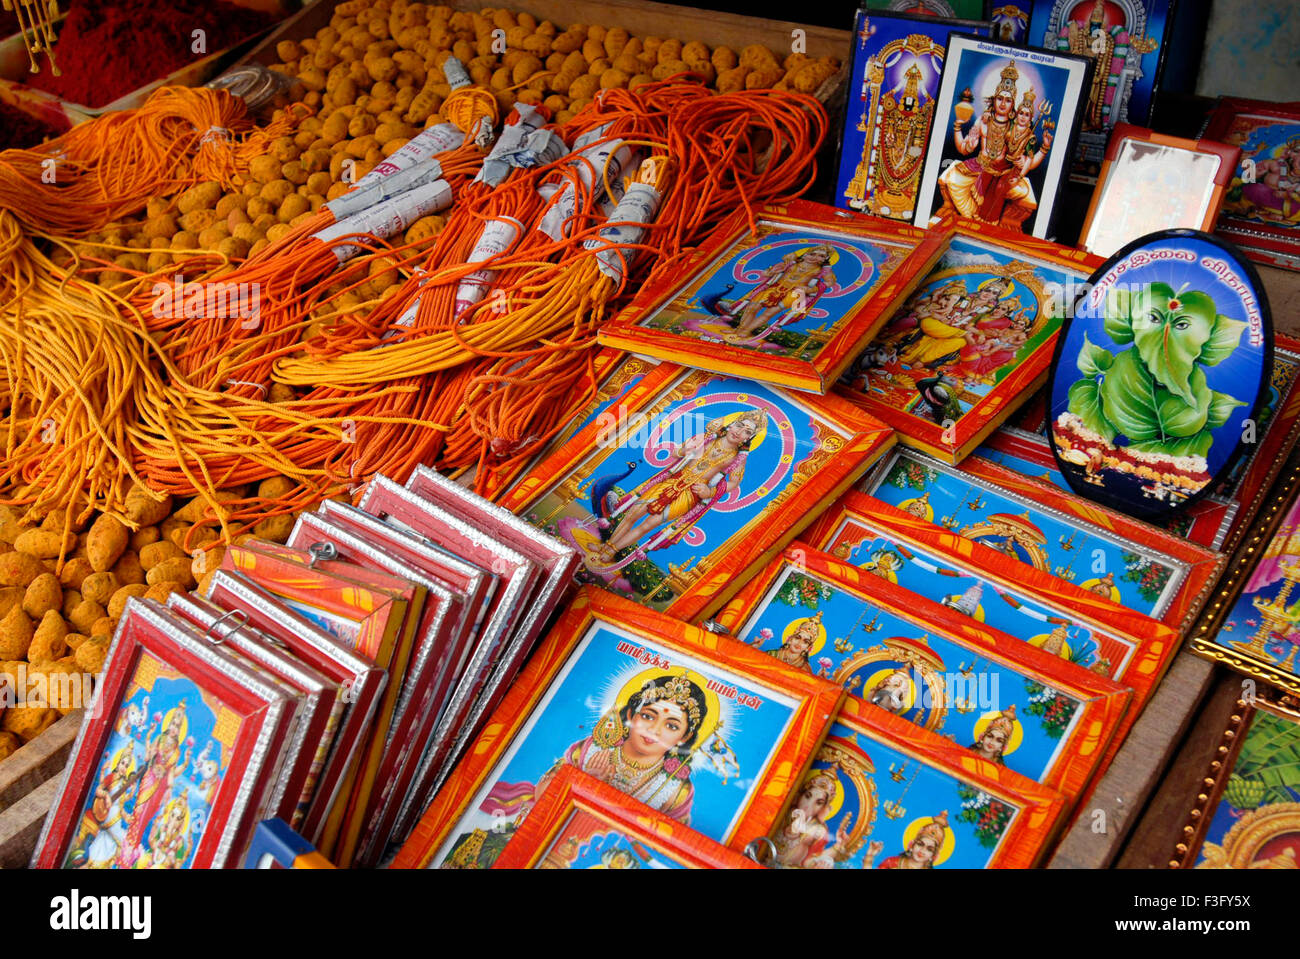 Turmeric and gods pictures in shop ; Swamimalai ; Tamil Nadu ; India Stock Photo